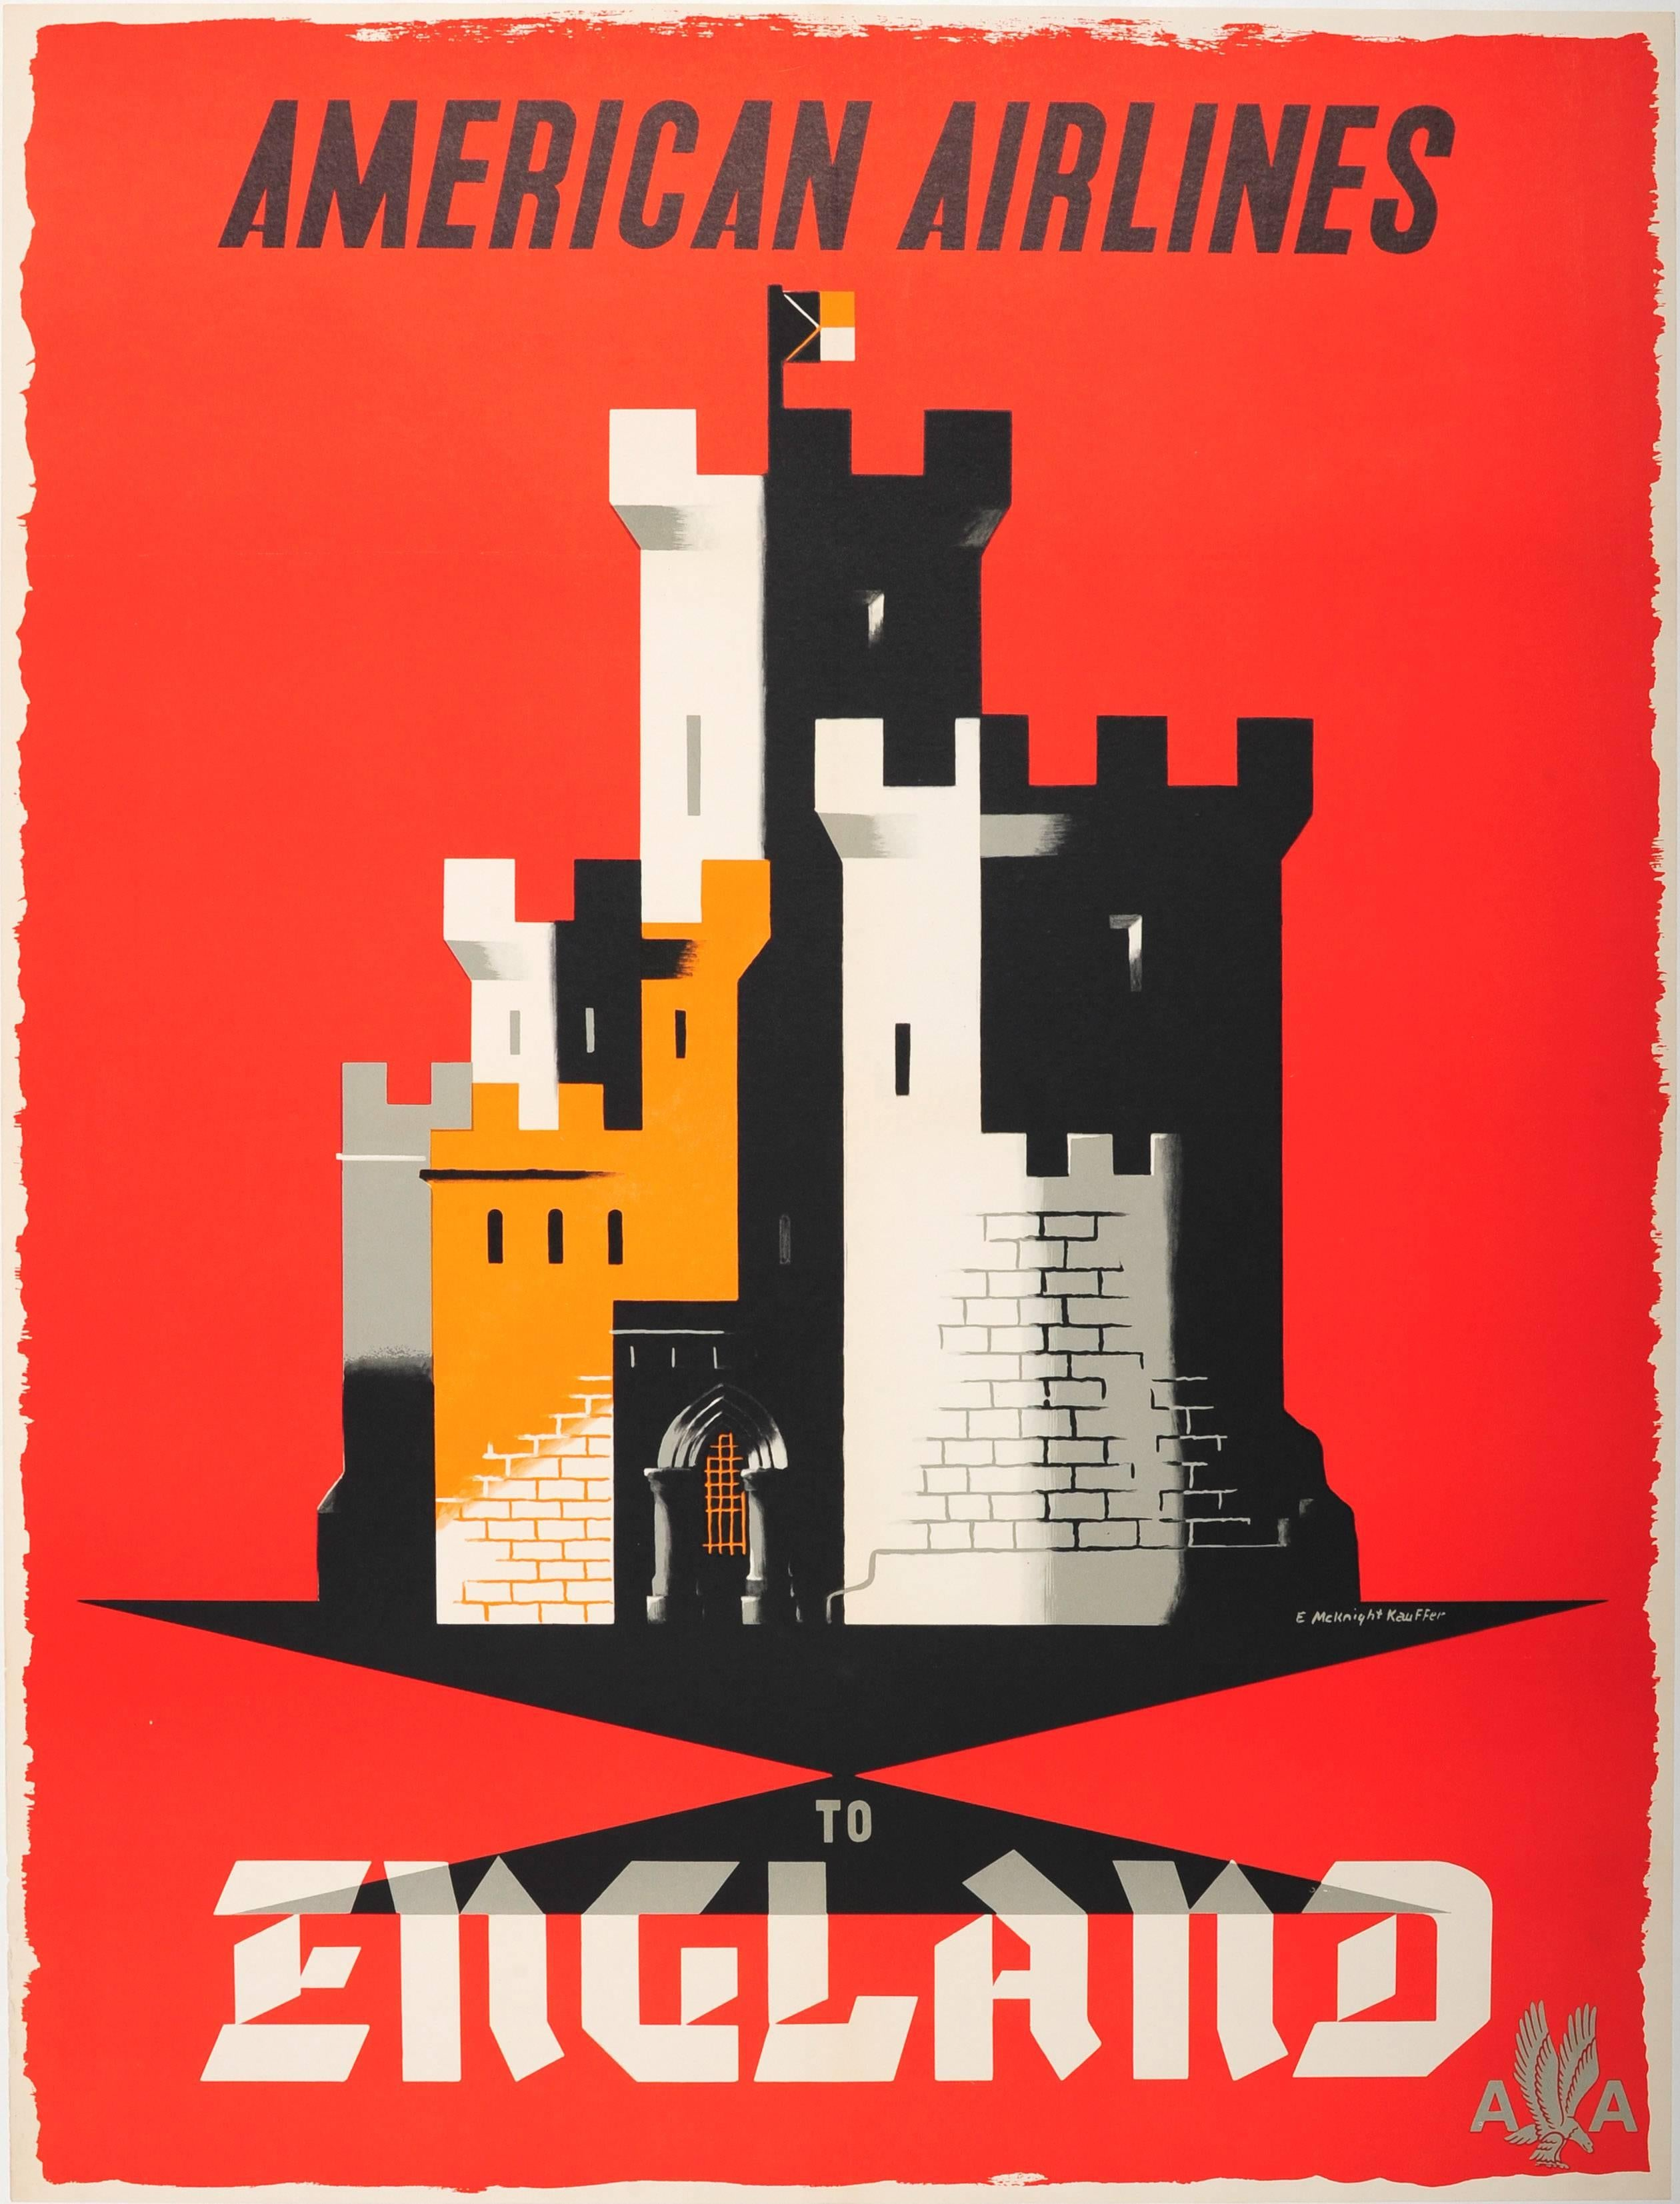 Original Vintage Travel Poster By McKnight Kauffer American Airlines To England